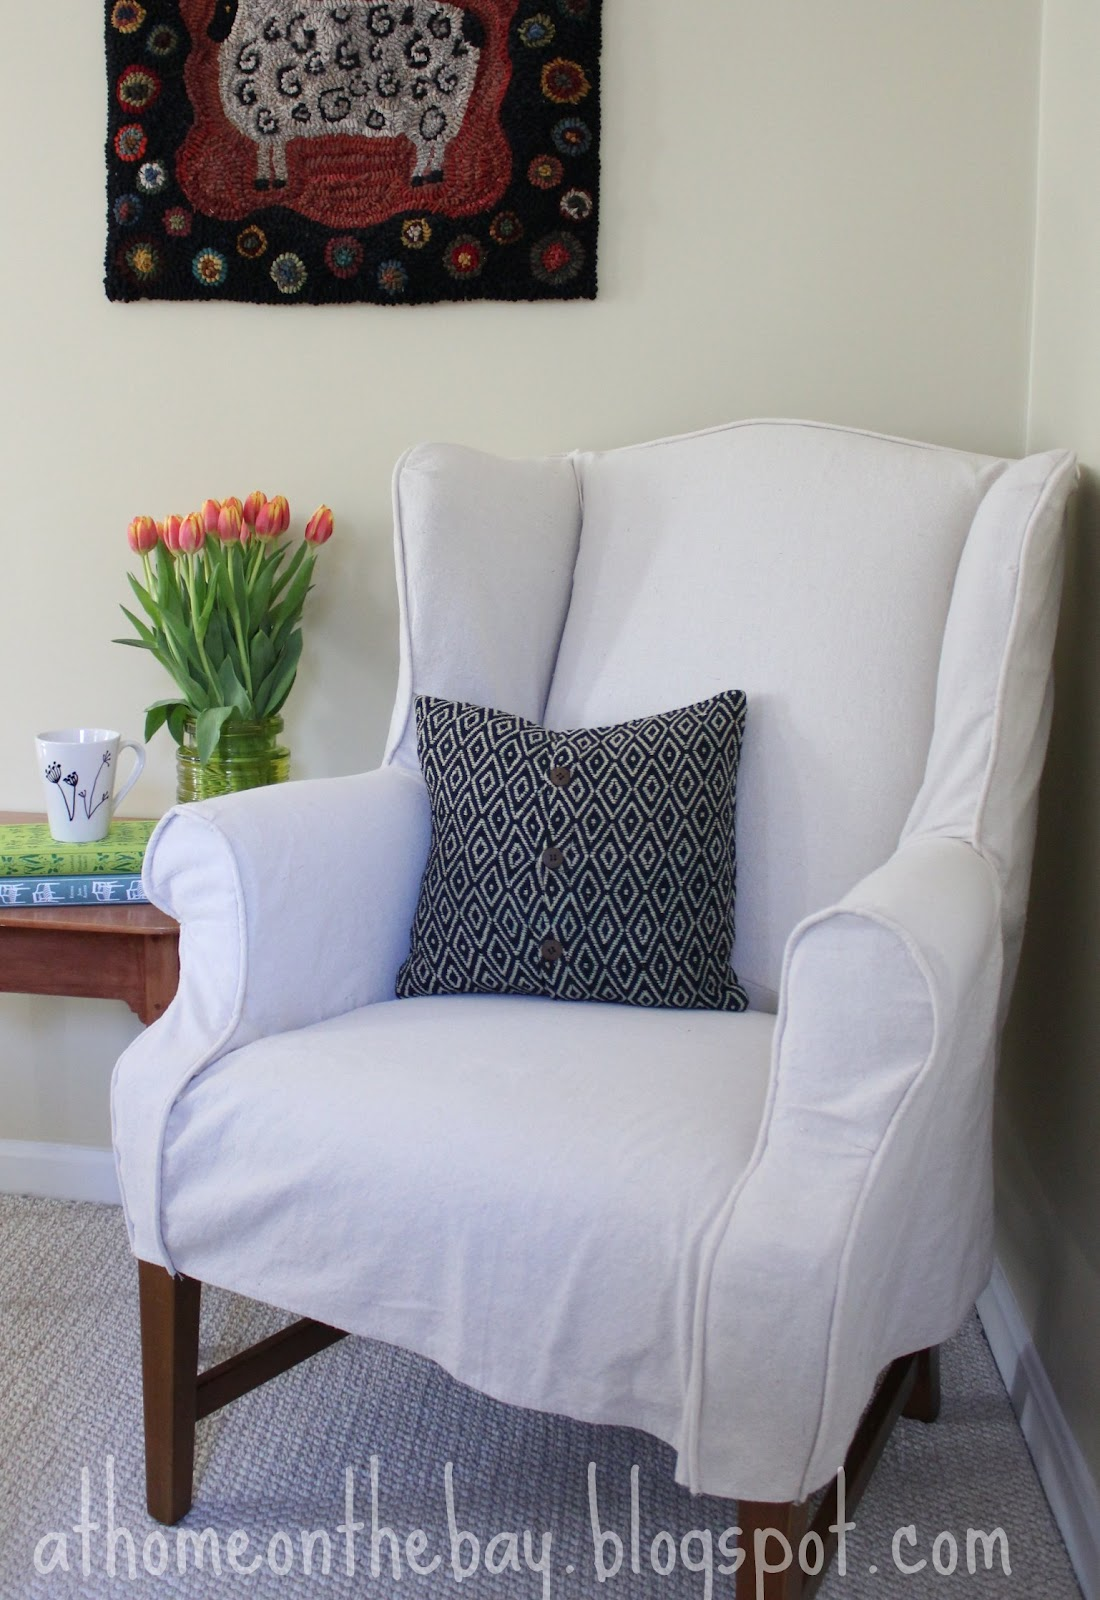 How To Make A Slipcover For Sofa Chair Todd Chesterfield Wing